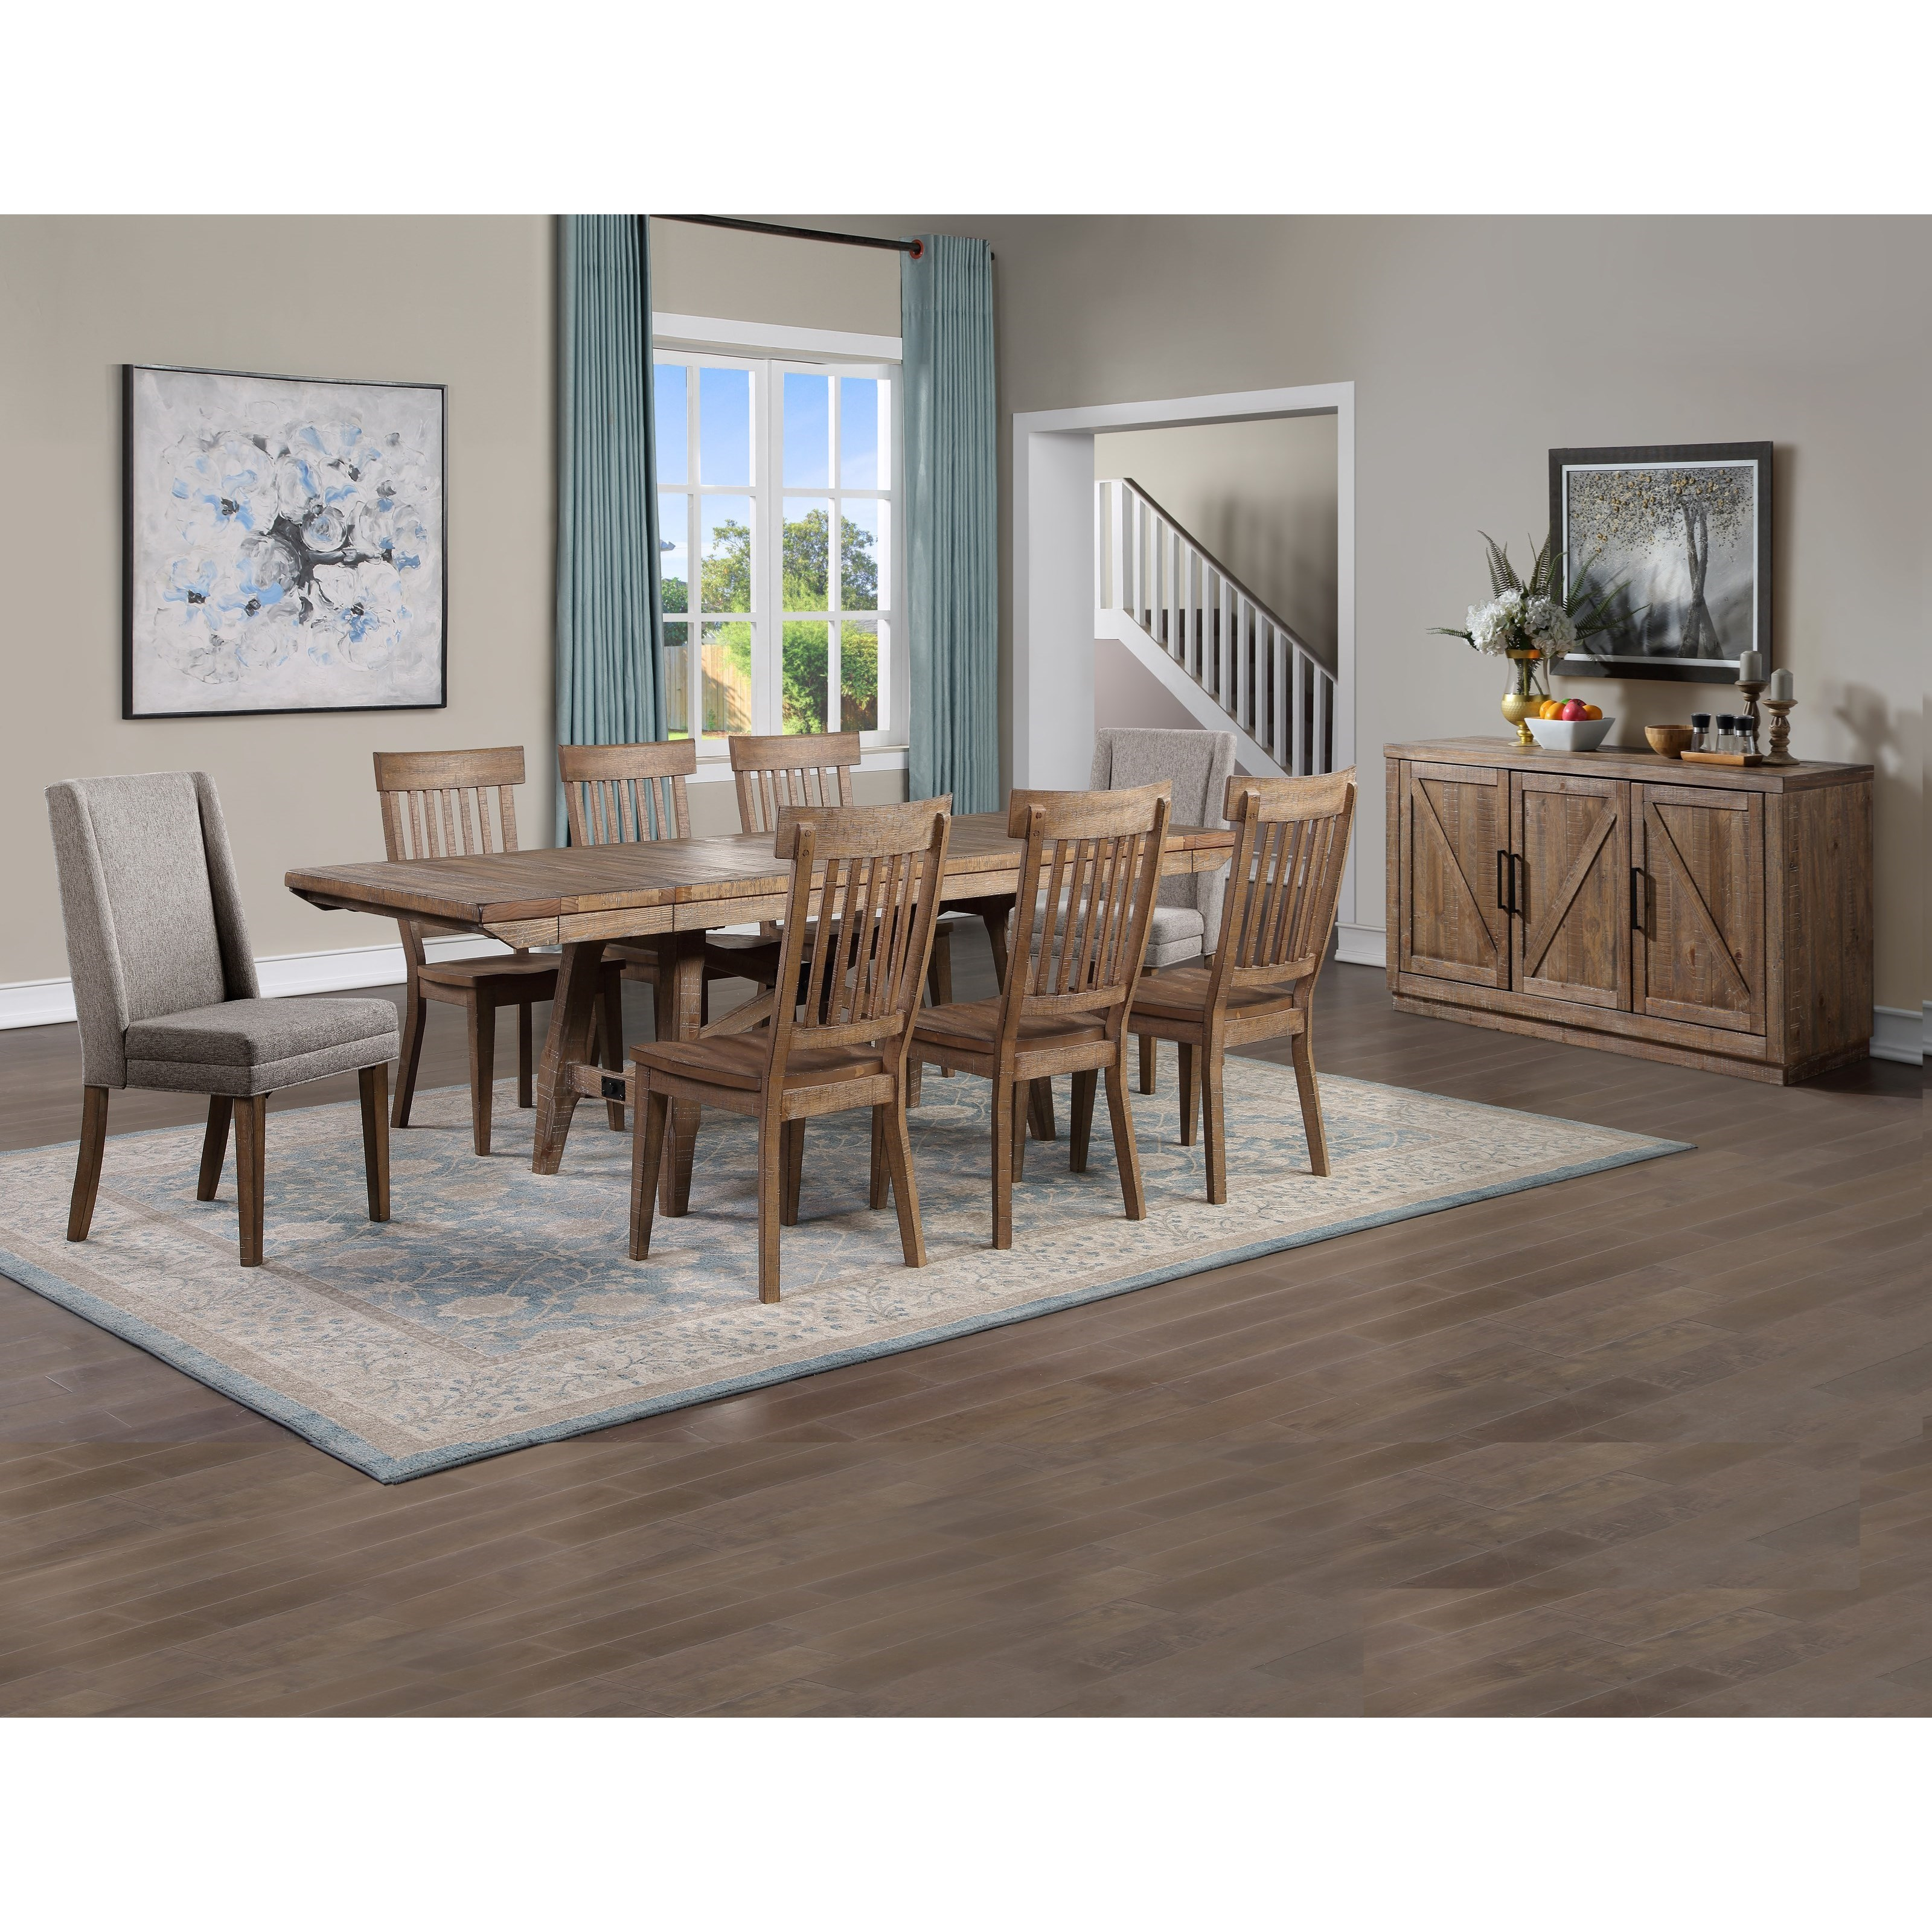 Riverdale Dining Room Group by Steve Silver at Northeast Factory Direct